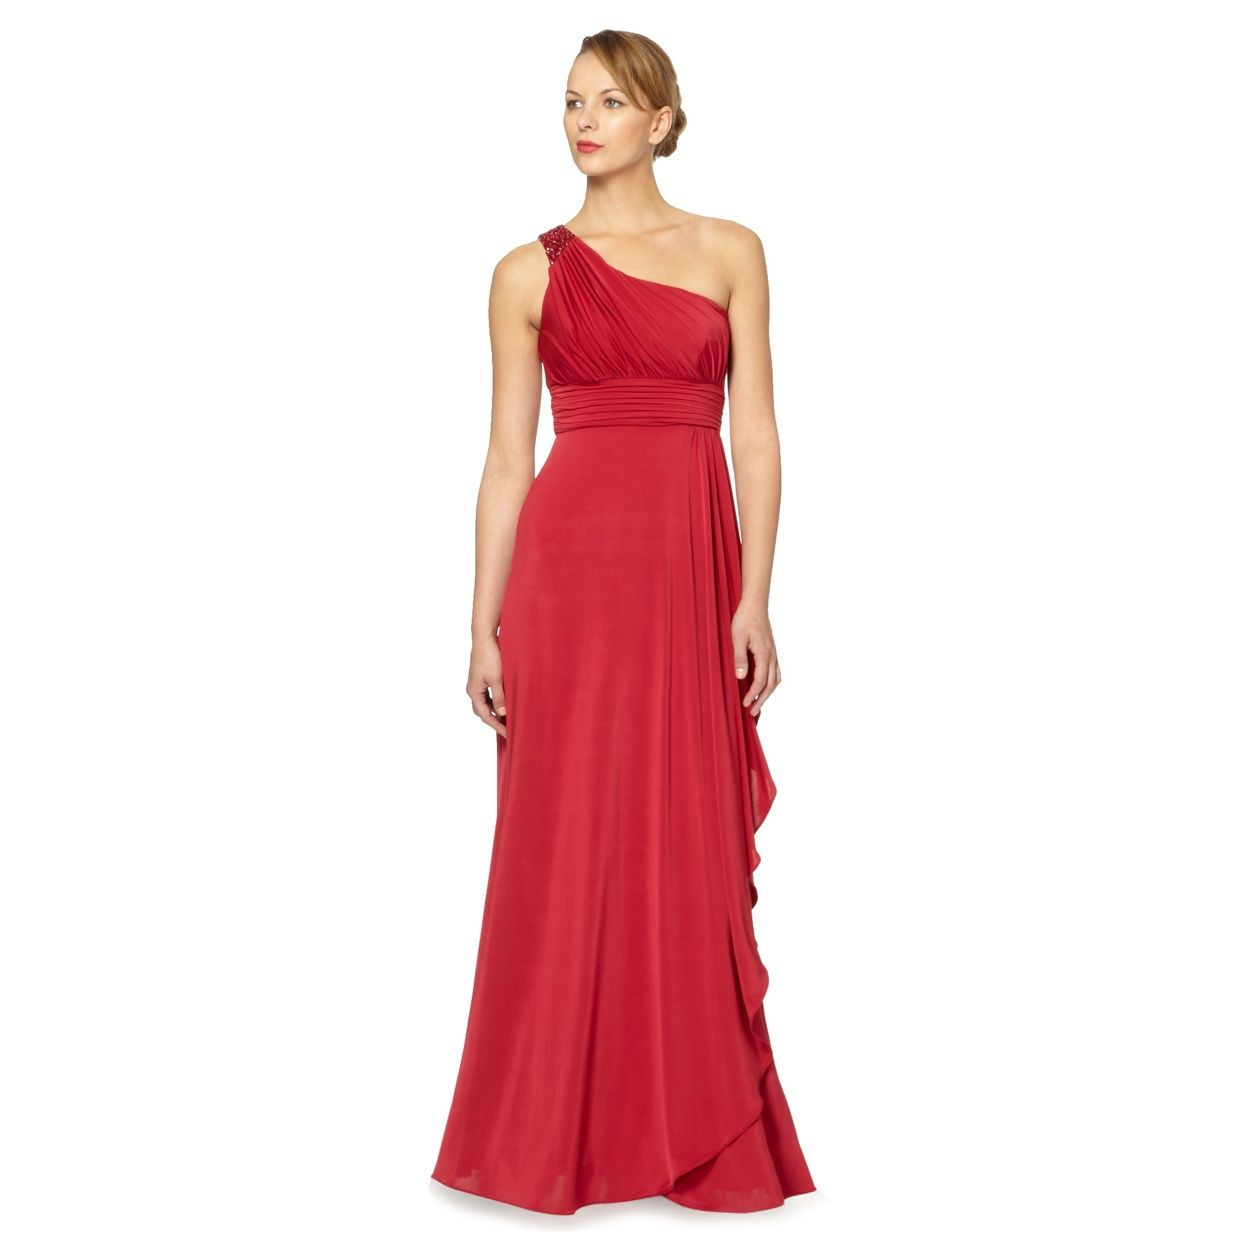 Debut red ruched one shoulder evening gown at debenhams ive debut red ruched one shoulder evening gown at debenhams i ombrellifo Image collections